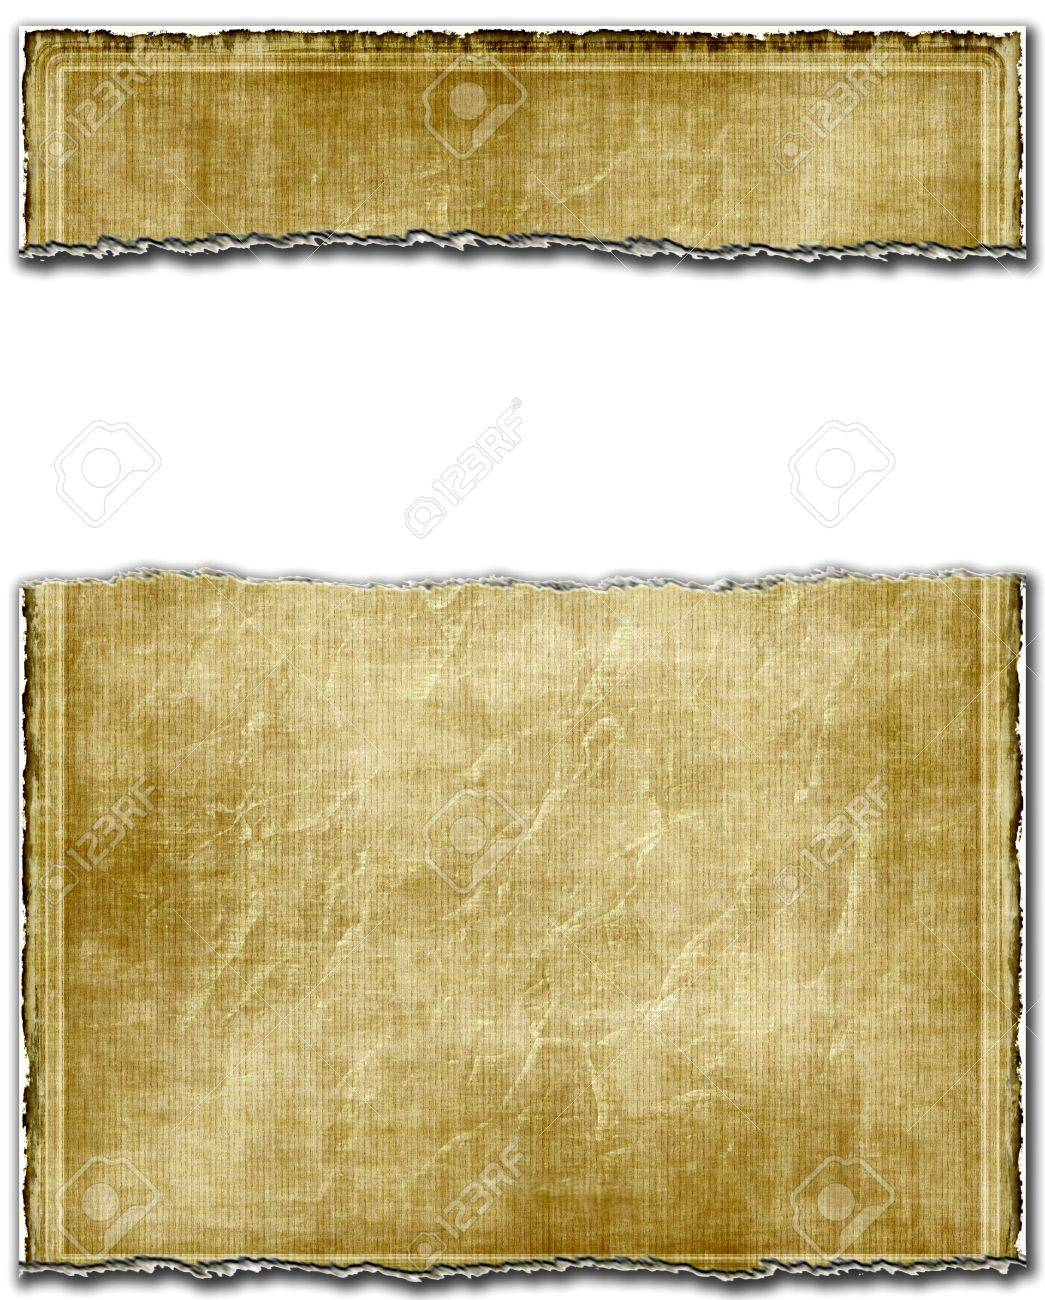 Old Light Ripped Torn Paper With White Banner Copy Space Stock ...